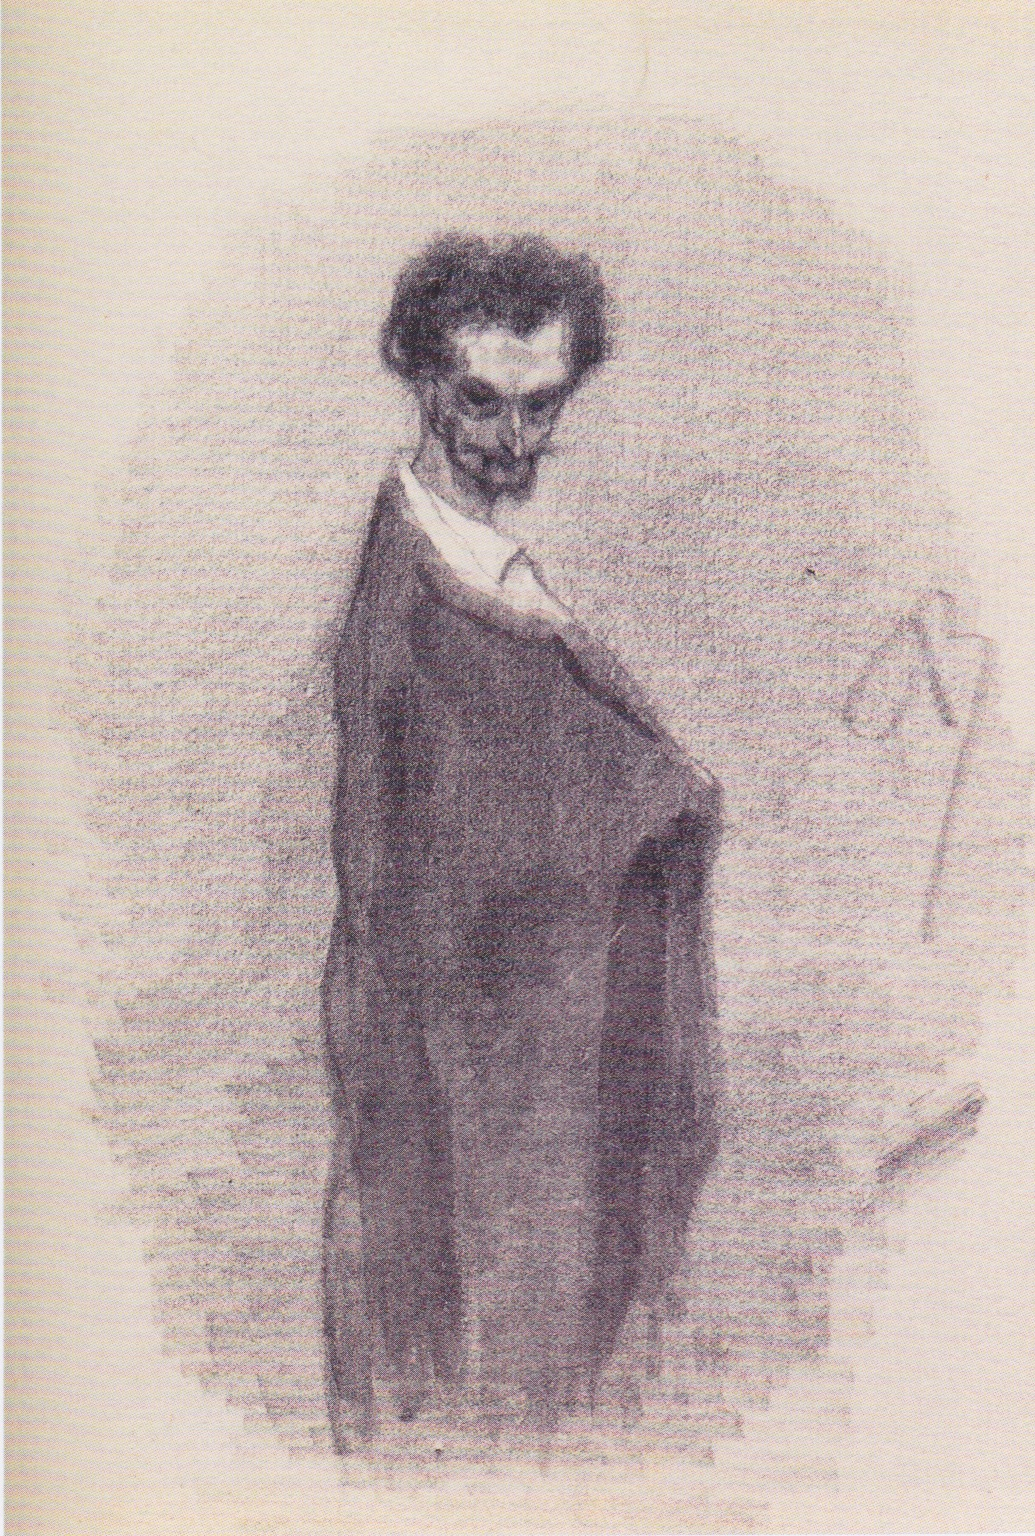 Satanic Self-Portrait, 1860